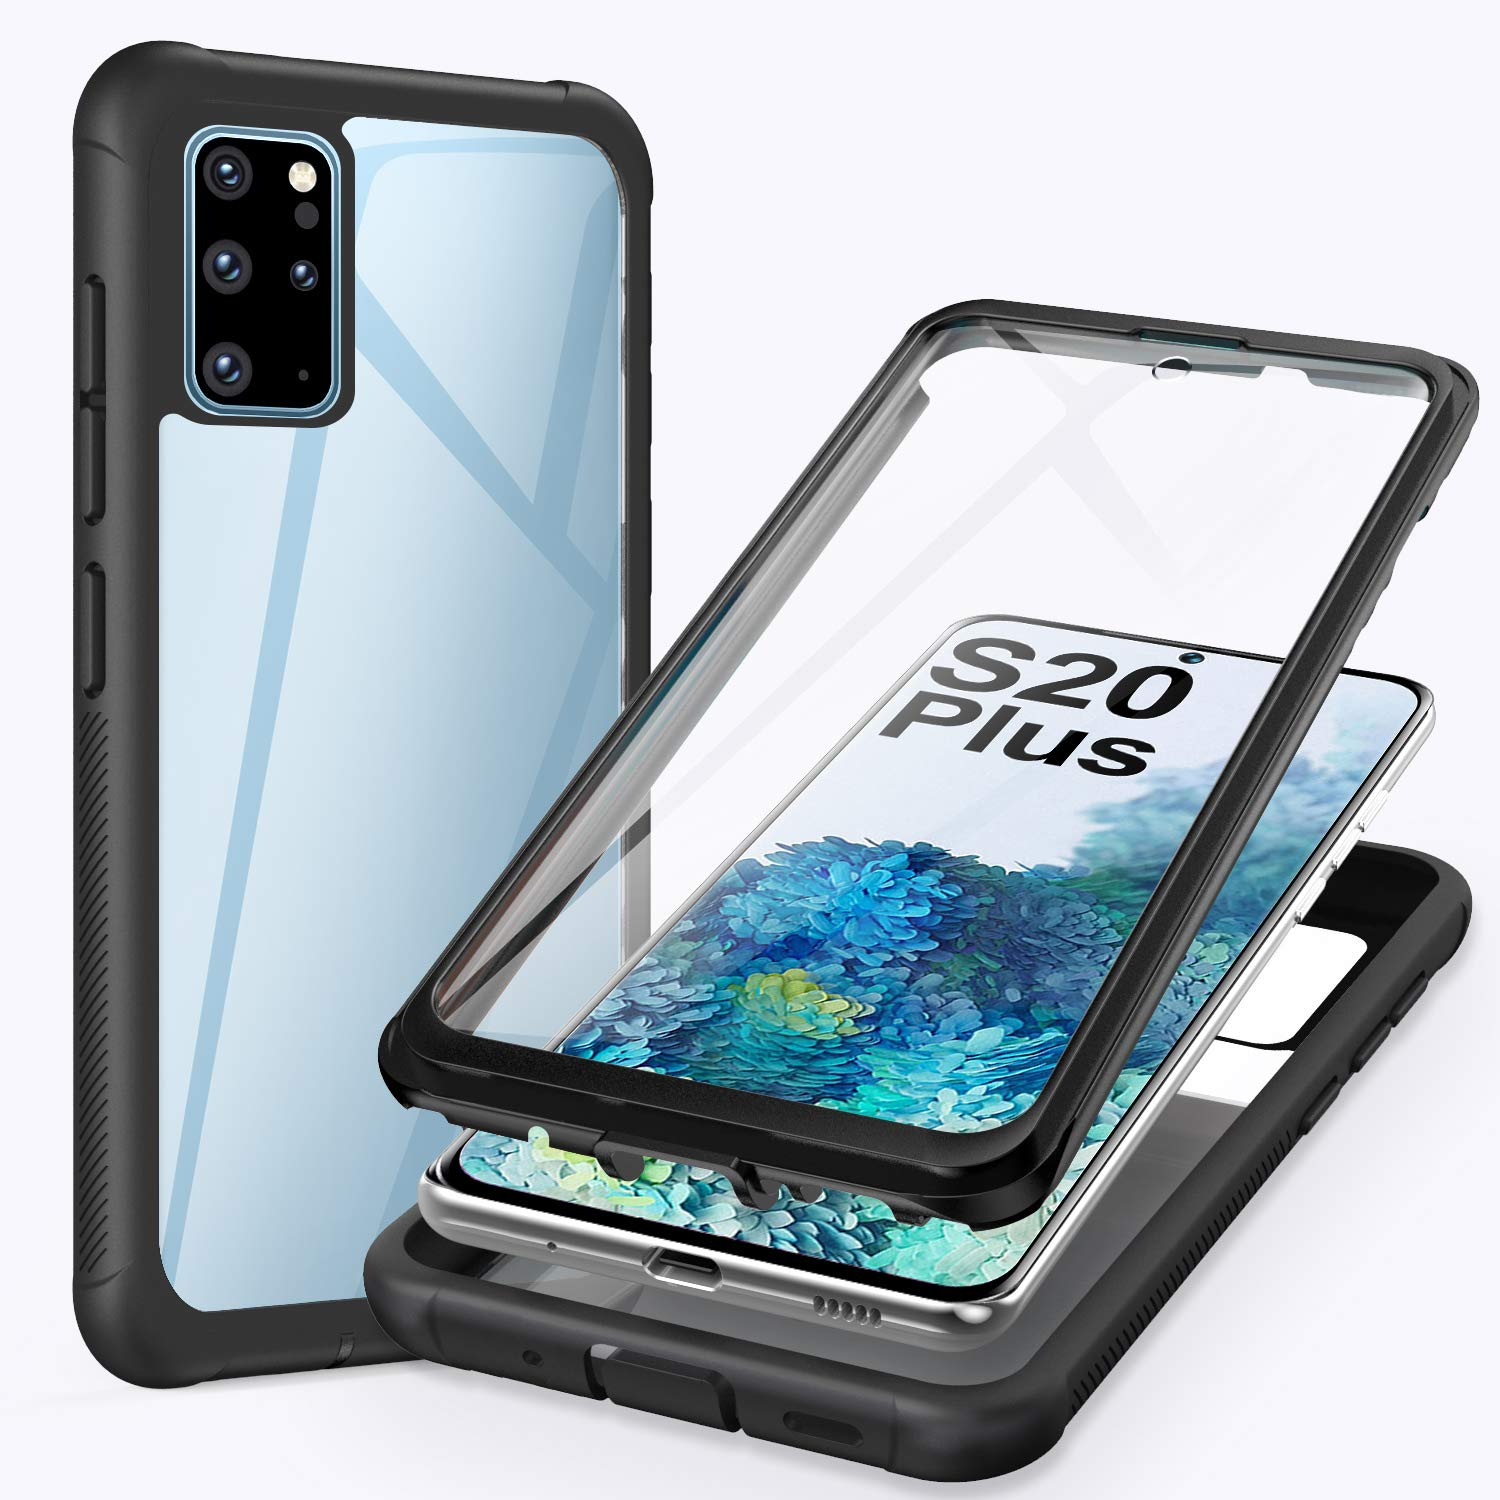 ivencase for Samsung Galaxy S20 Plus Case, 360 Degree Full Body Protection Cover with Built-in Screen Protector Front and Back Bumper Shockproof Non Slip Case for Samsung S20 Plus/s20+ 6.7'' 4G/5G